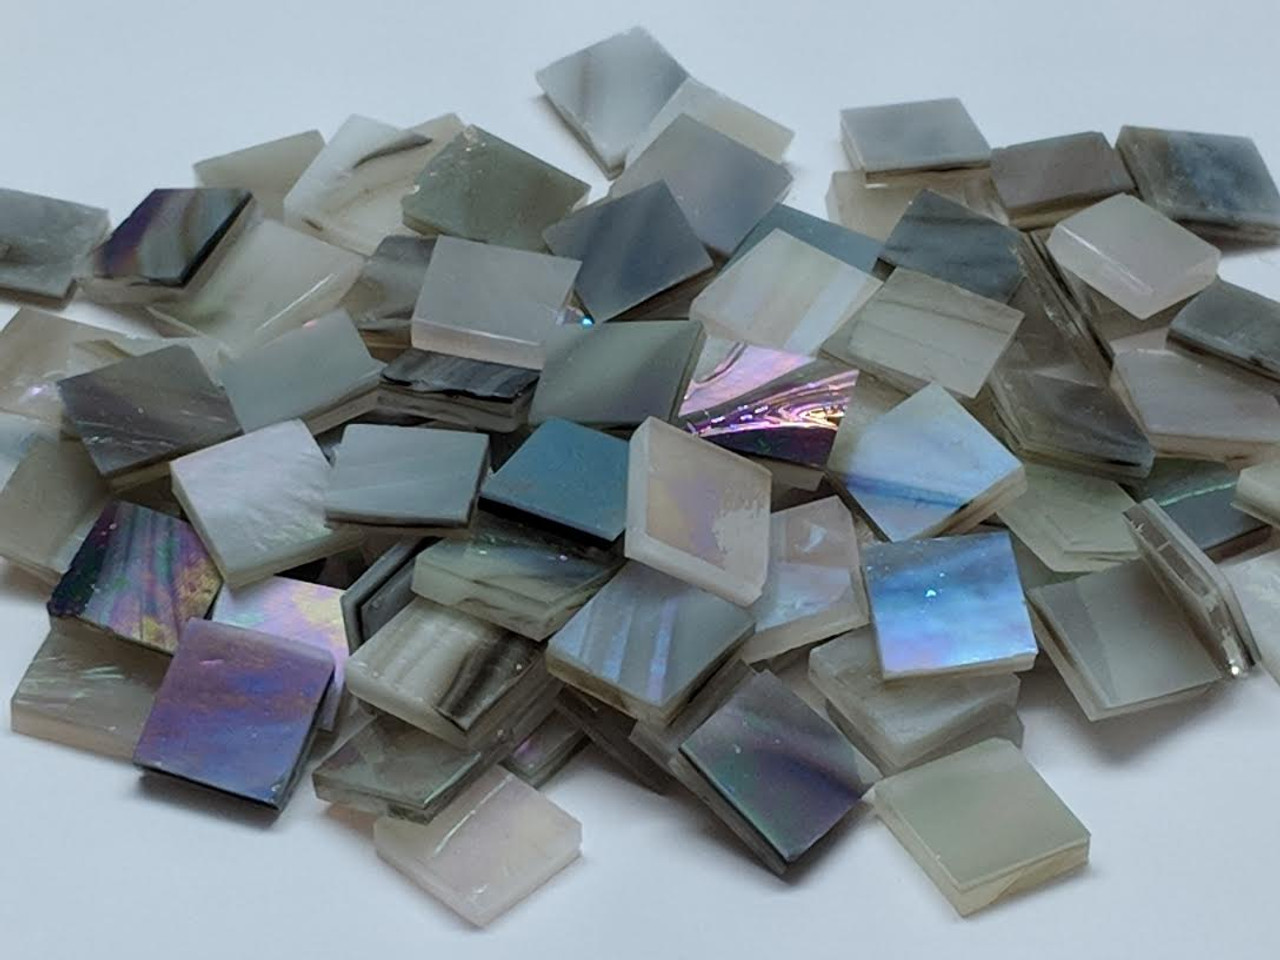 Brown, Gray & White Opal Iridescent Stained Glass Mosaic Tiles